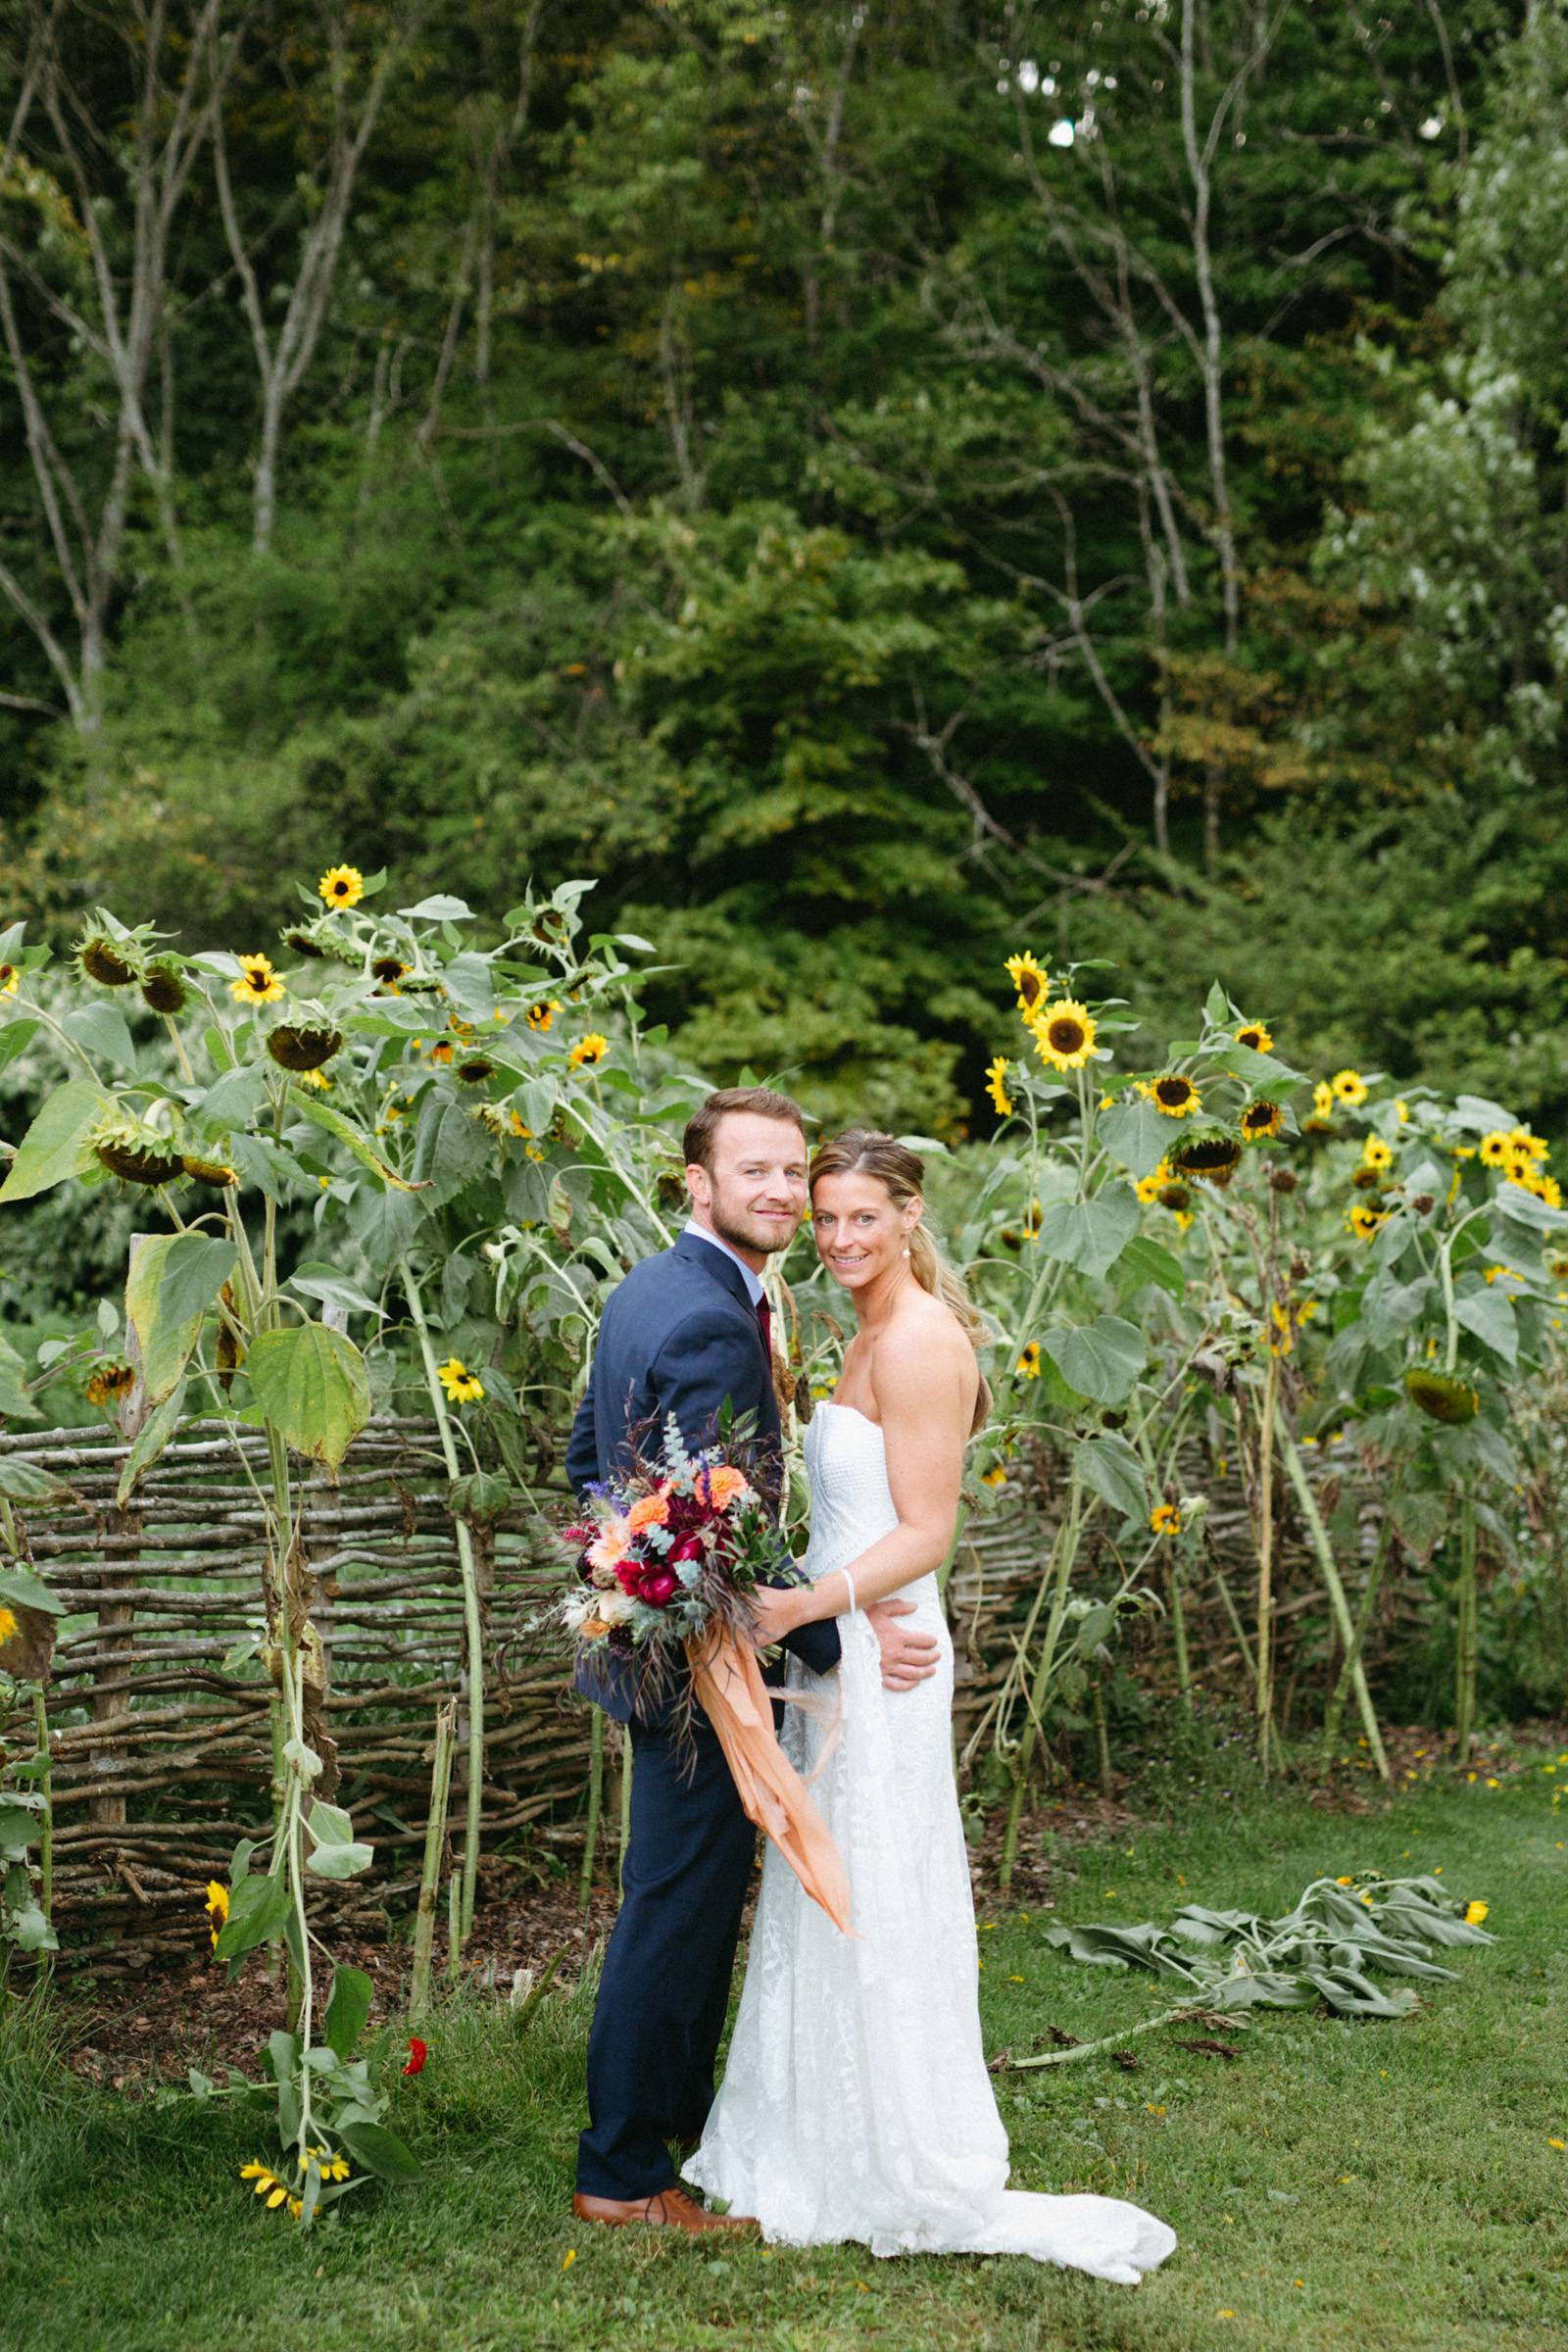 Bride and groom portrait in front of sunflowers